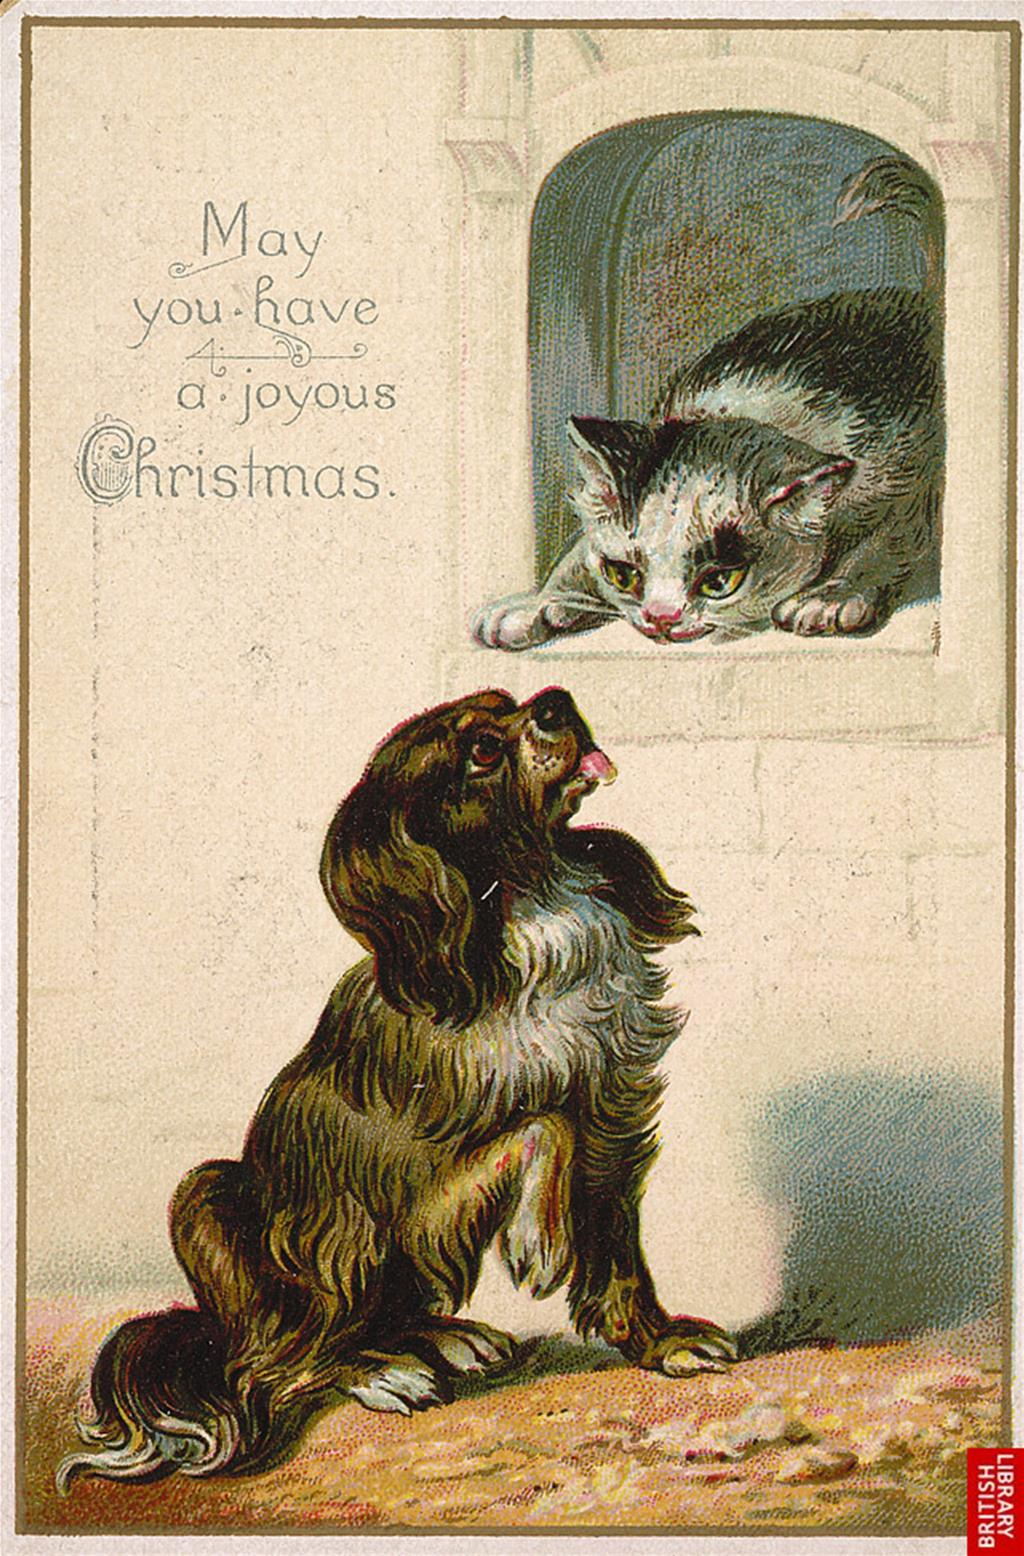 Common Victorian Times Christmas Food: roasted goose & pudding